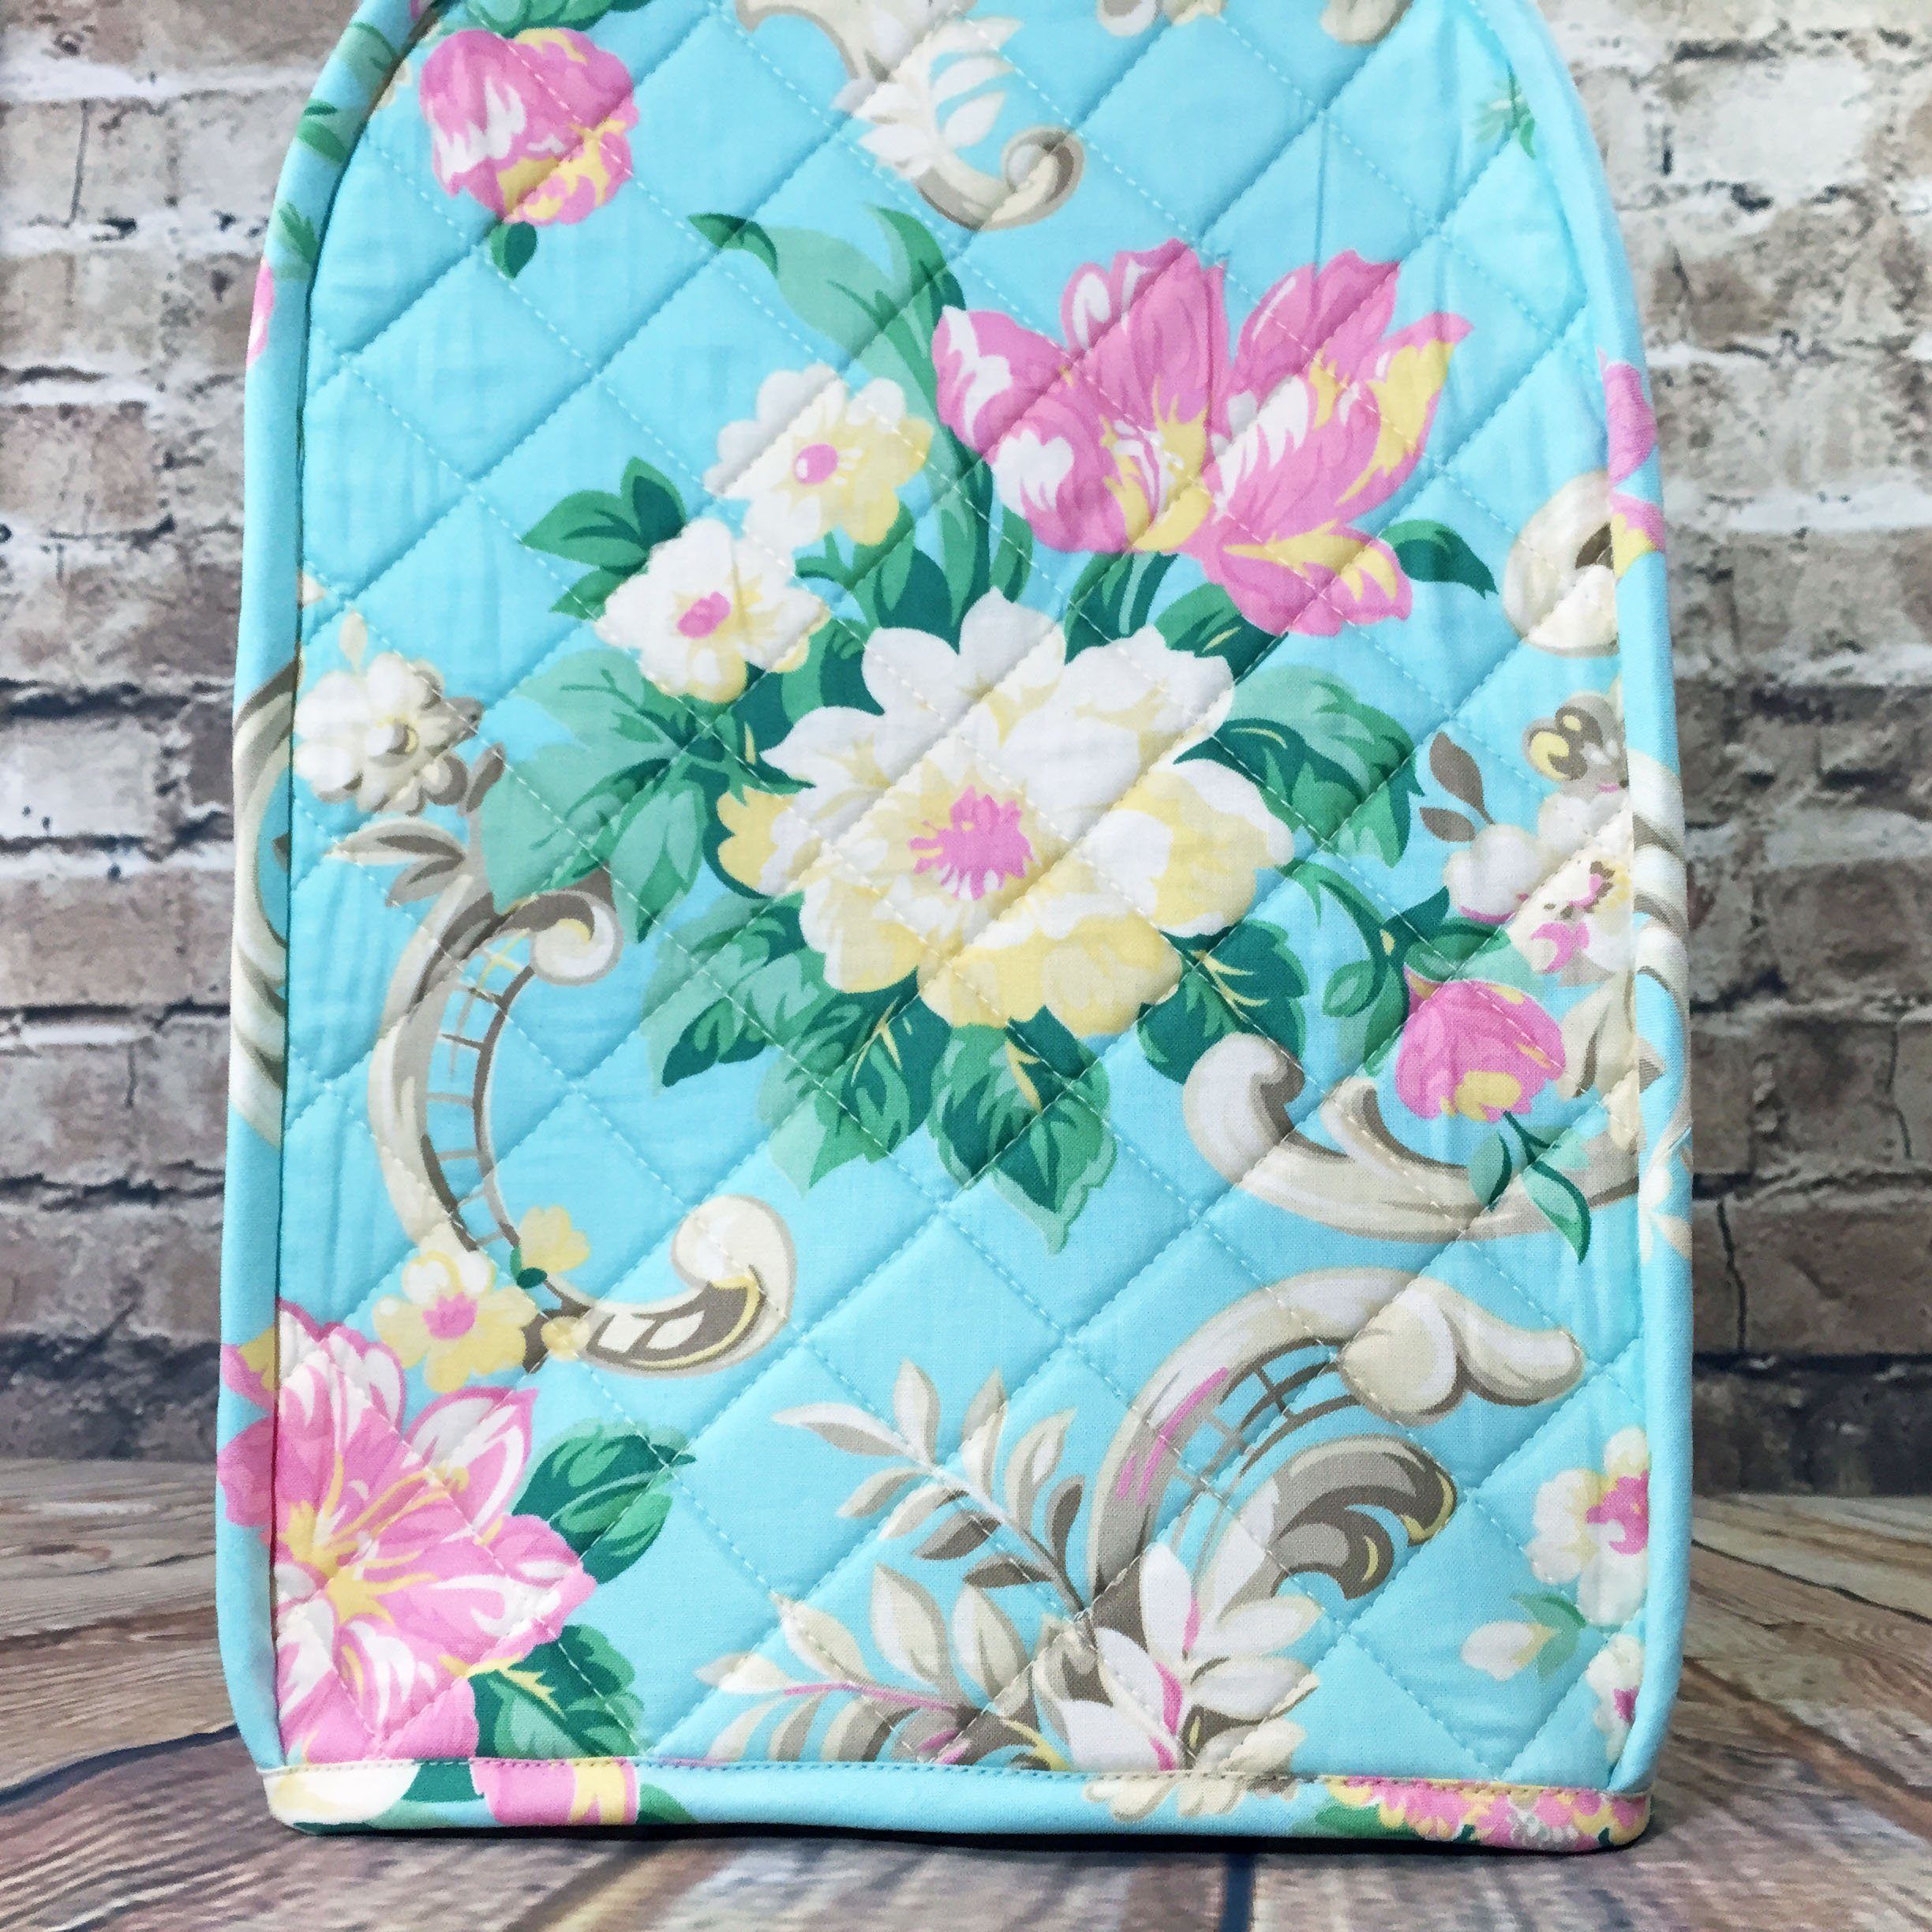 100% Cotton, Custom, Heirloom Quality, Quilted, Mixer Cover, Handcrafted to fit a 4.5 Qt. or 5 Qt. KitchenAid Tilt-Head Stand Mixer, Cozy, Made in Vermont by Baby Rozen Design (Image #7)